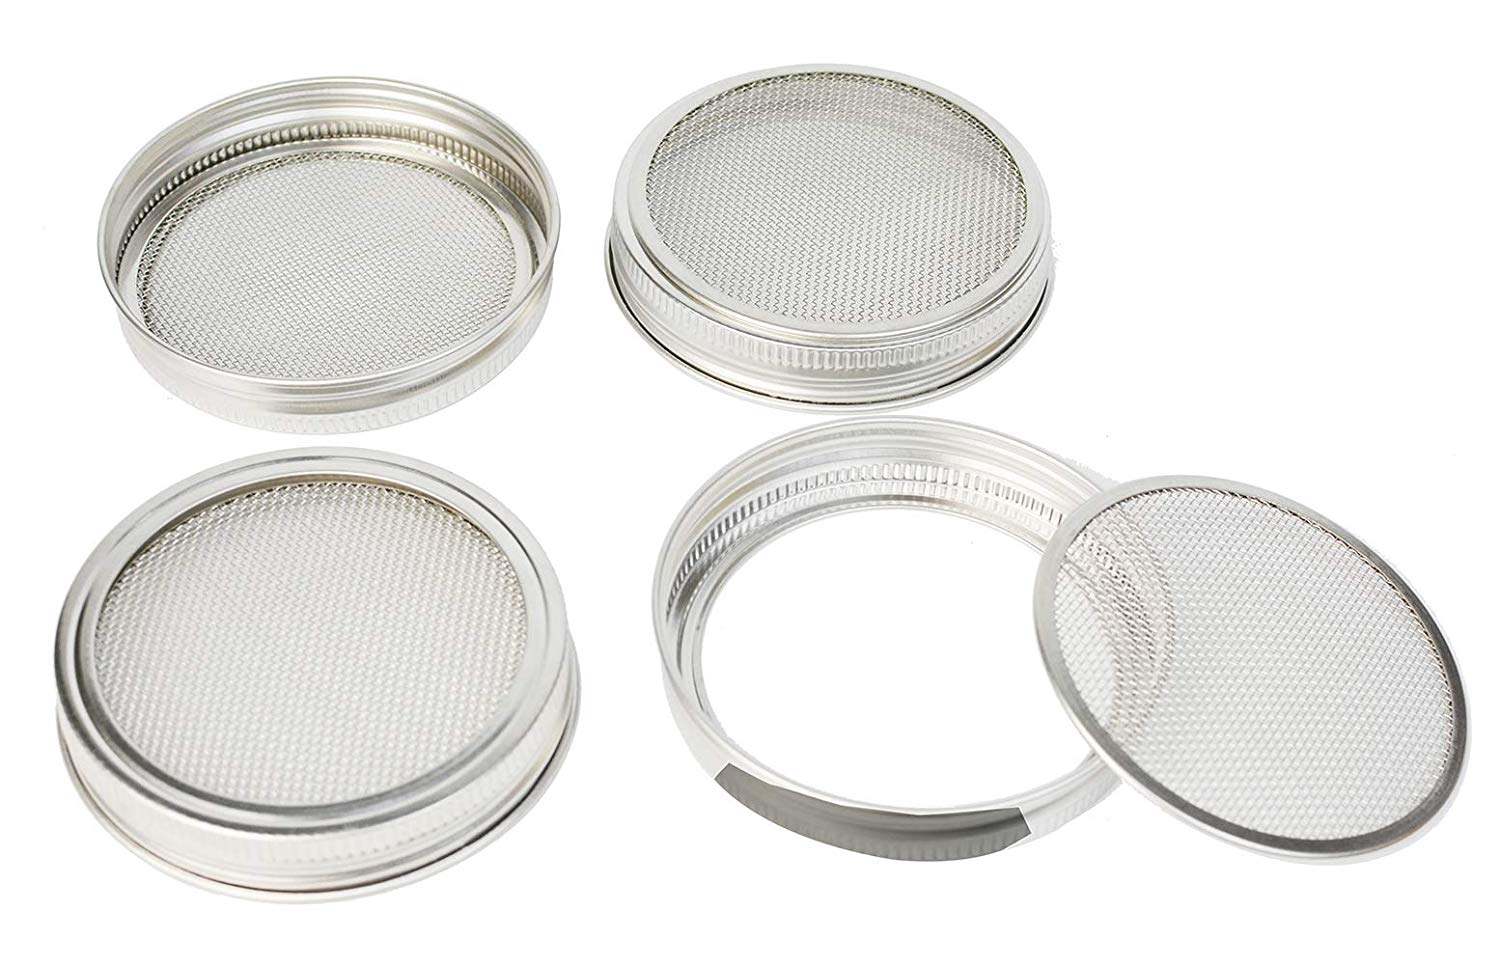 Sprouting Jar Lid Kit, HapWay 4 Pack Stainless Steel Bean Screen Mason Jar Sprouting Strainer Lids for Wide Mouth Mason Jars Canning Jars